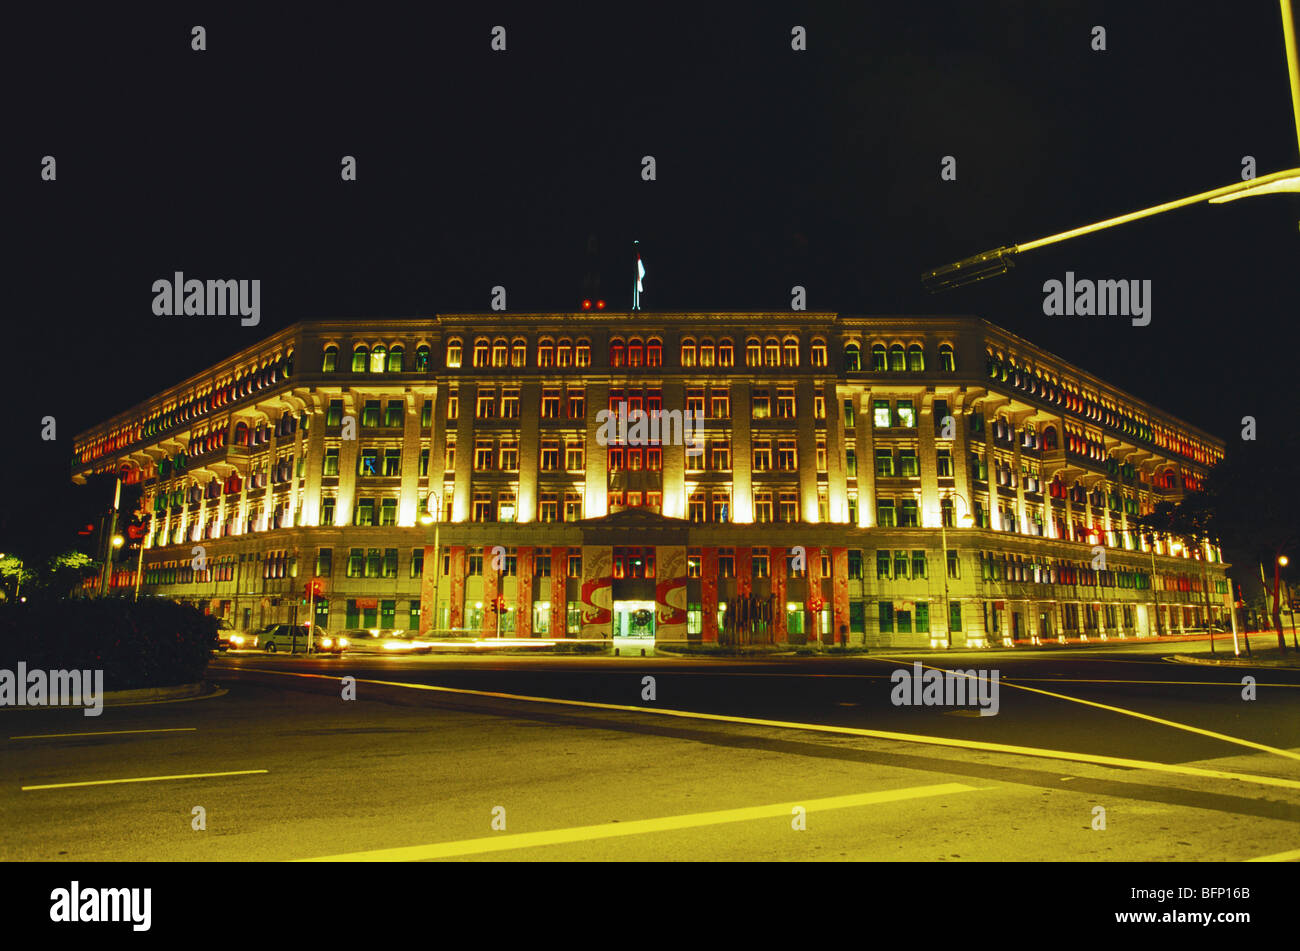 NPM 64488 : Cultural ministry building ; Singapore Asia - Stock Image